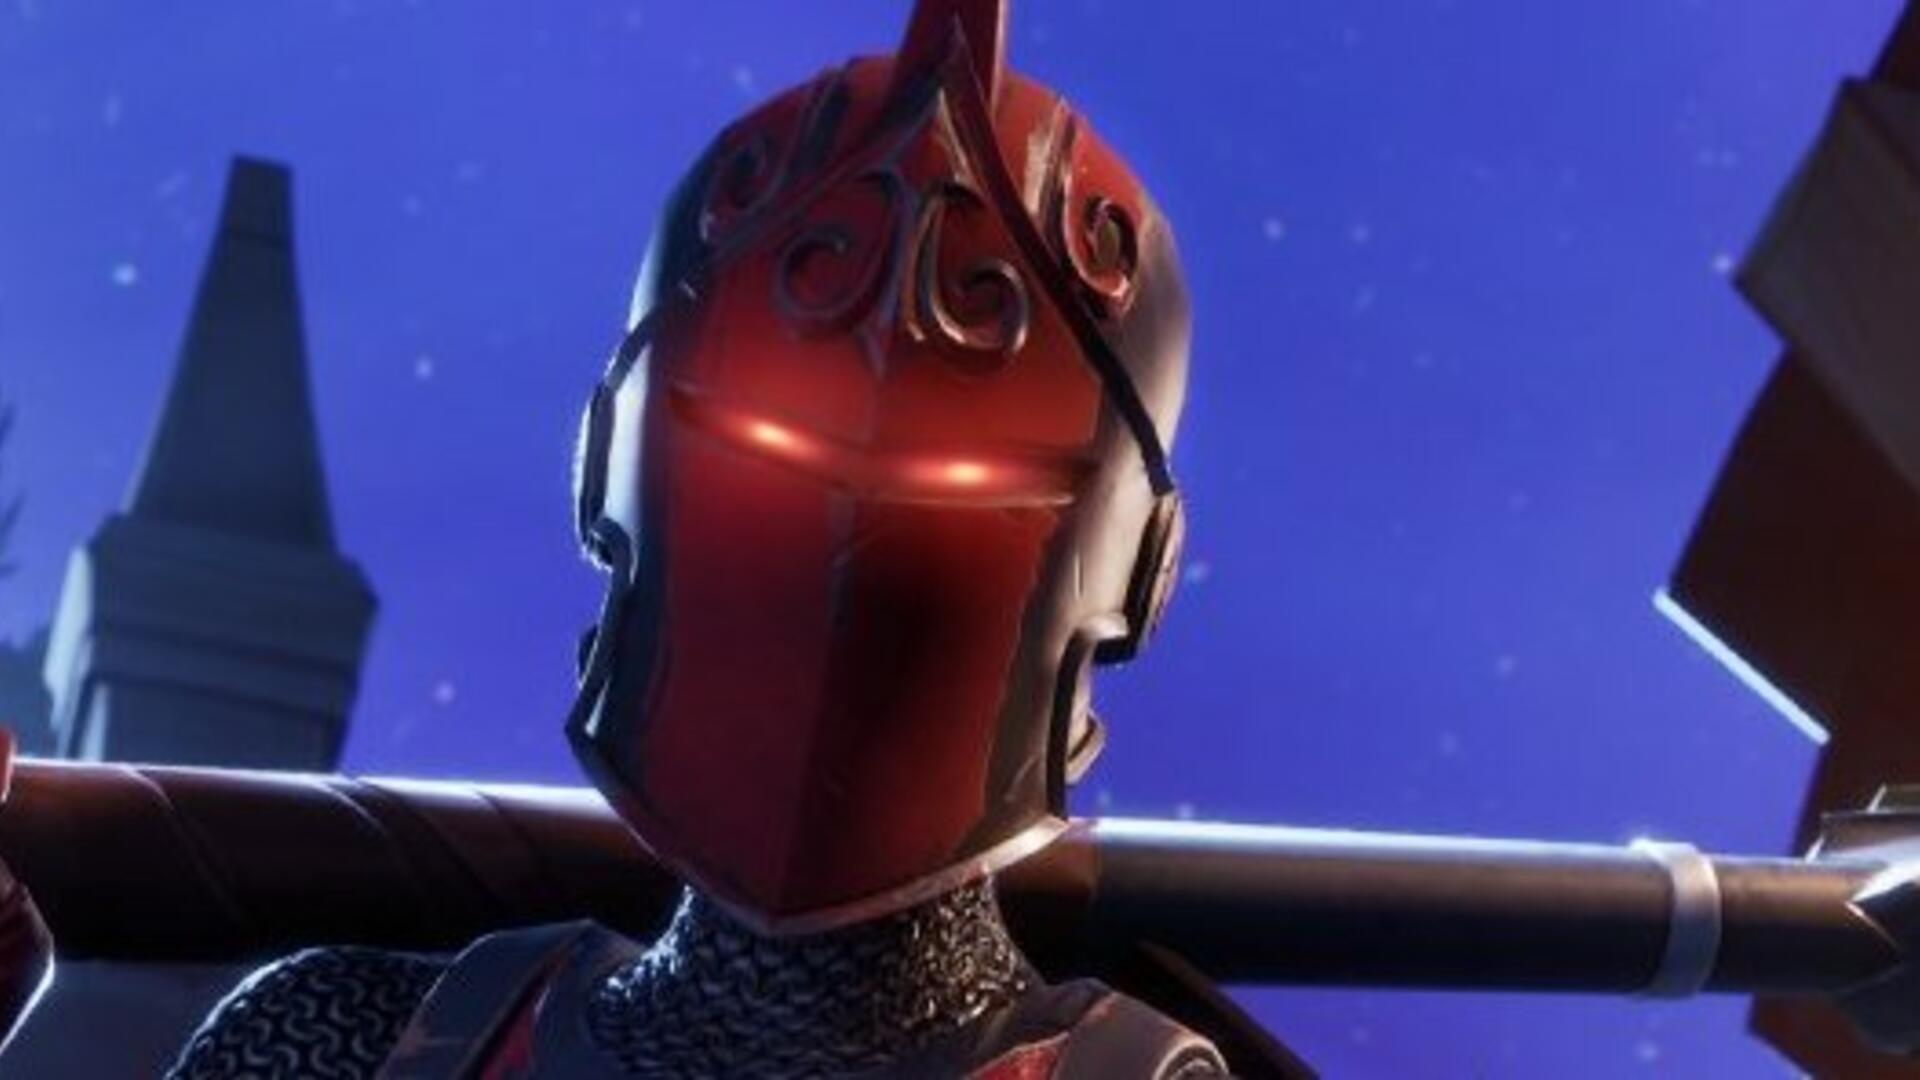 Fortnite's Red Knight Skin Coming to the Shop Today